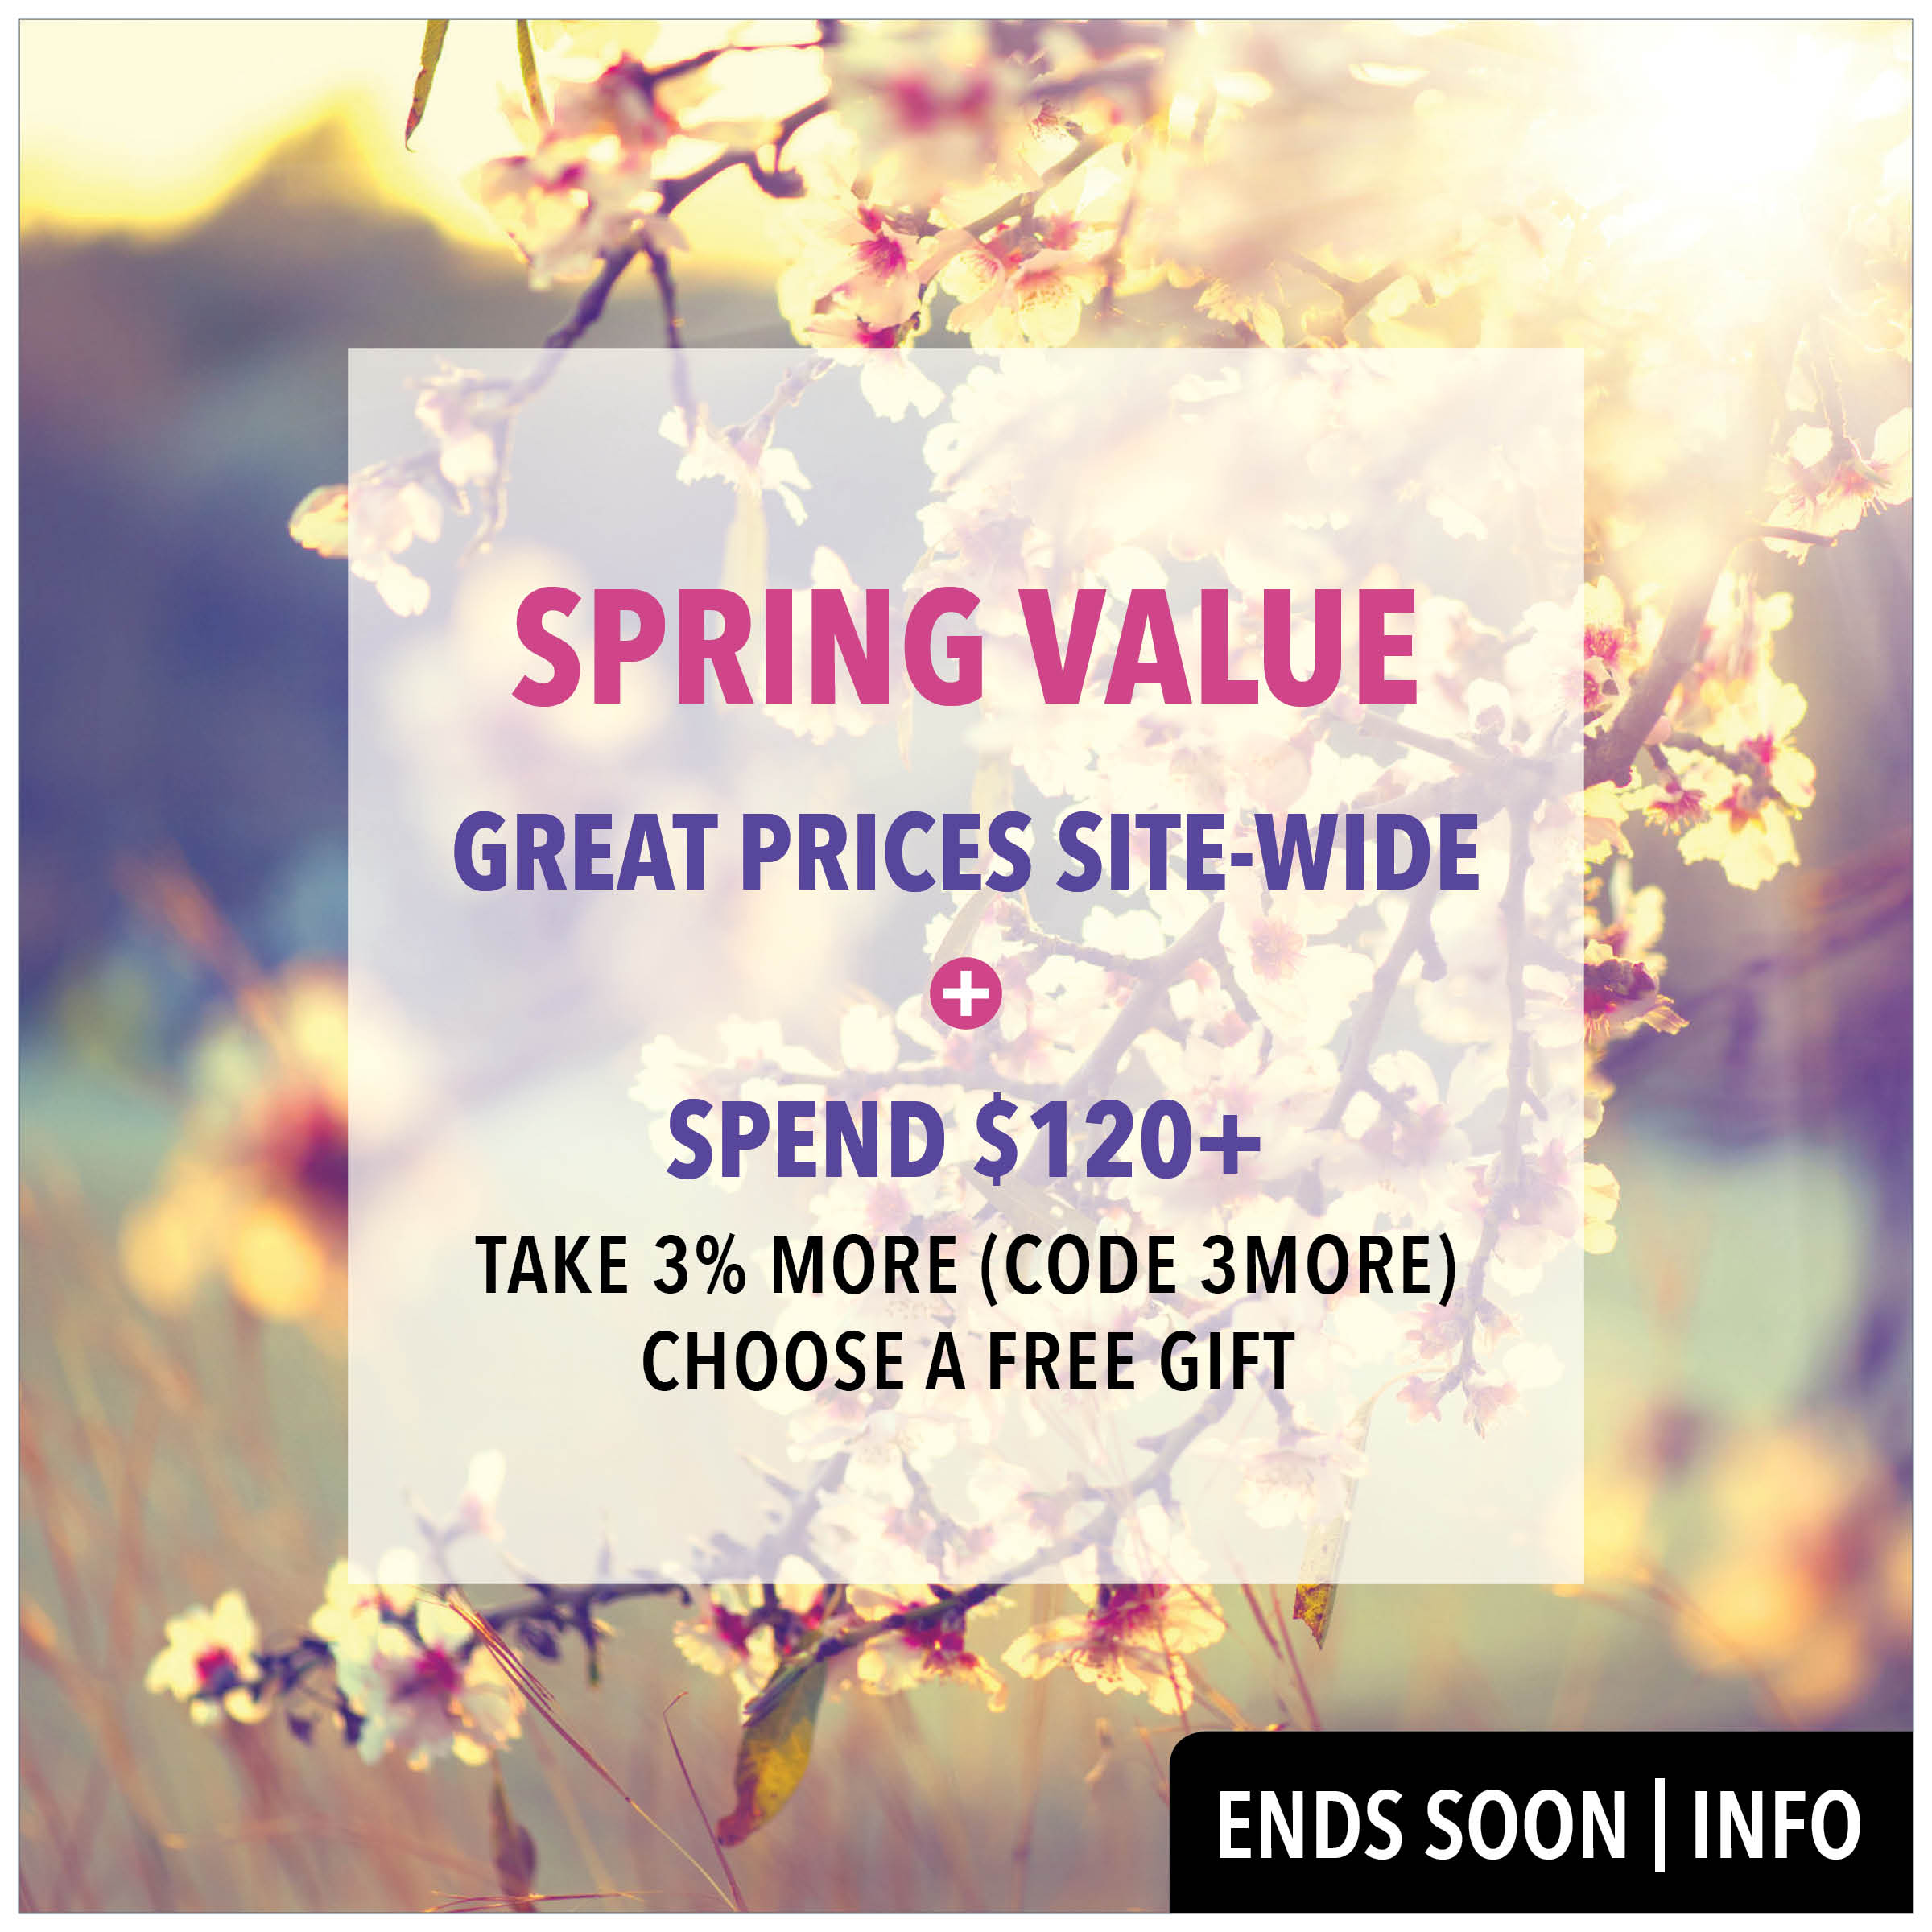 SPRING VALUE FROM PRODERMAL. ENDS SOON.